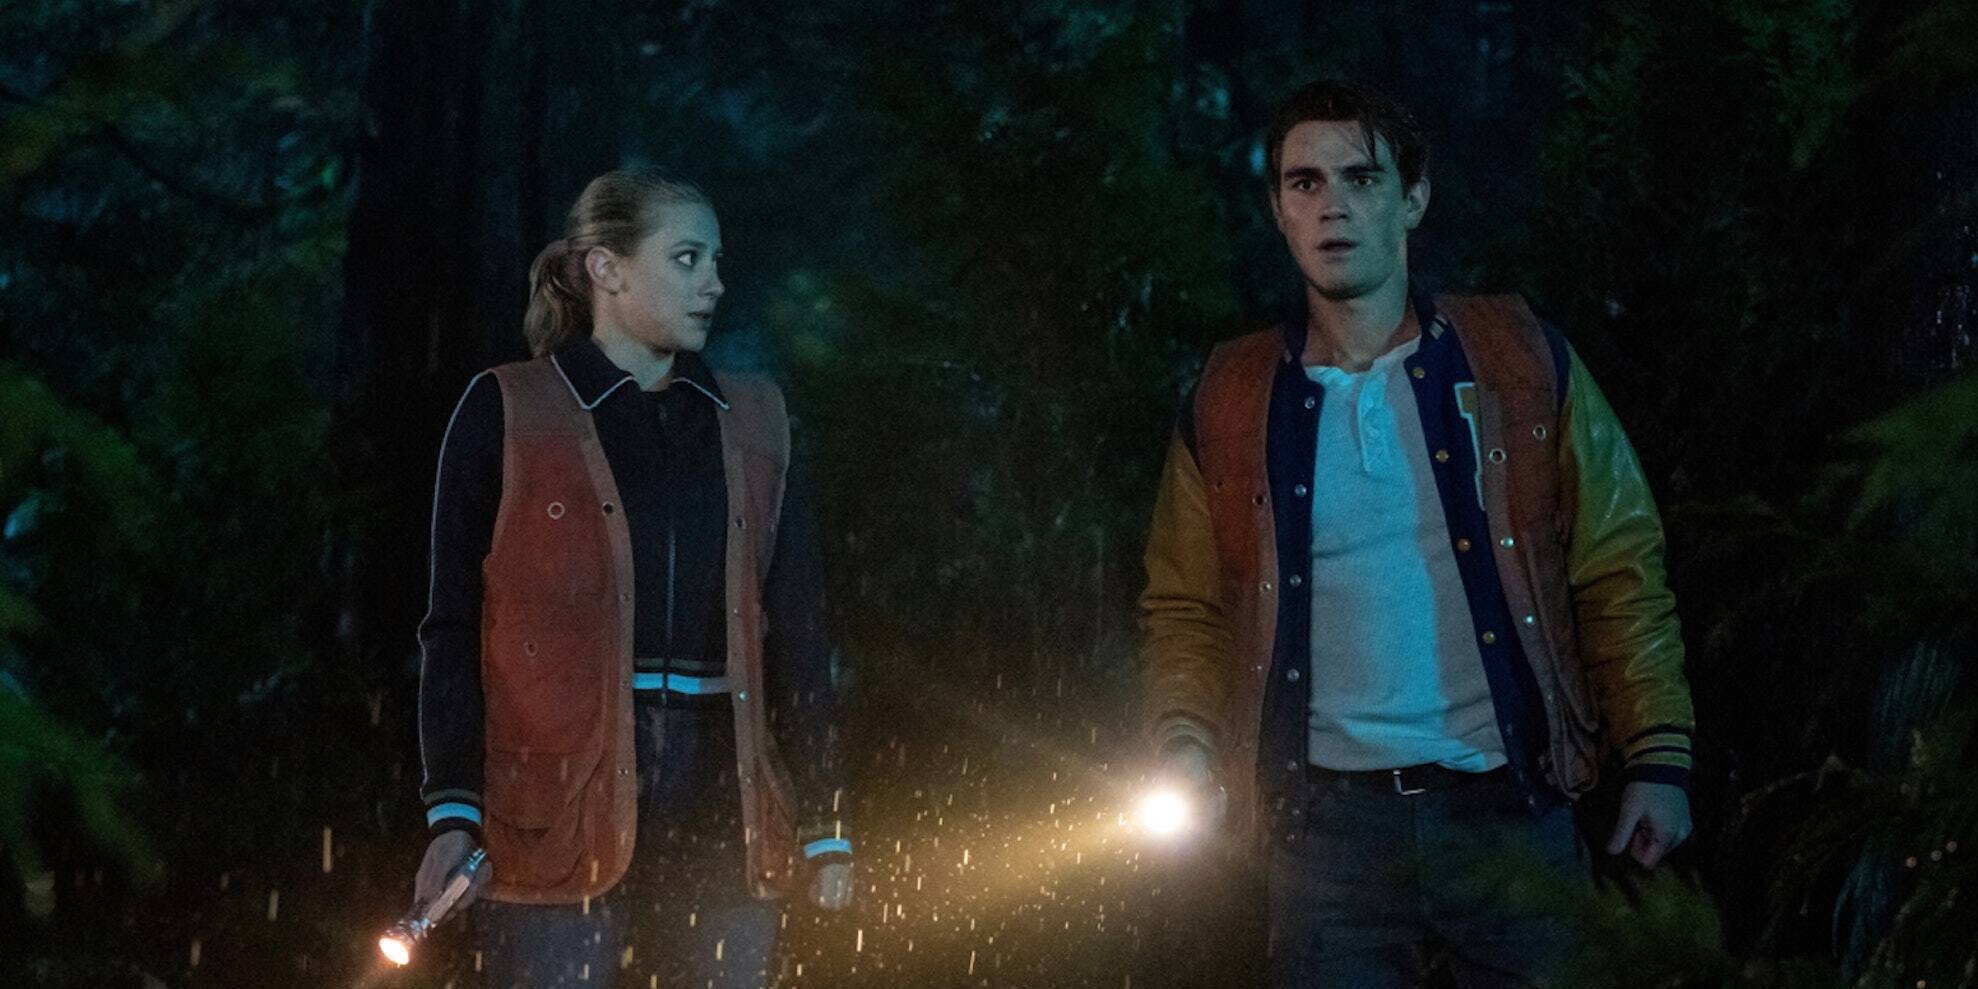 Riverdale Season 4 Episode 14 'Chapter Seventy-One: How to Get Away with Murder.'